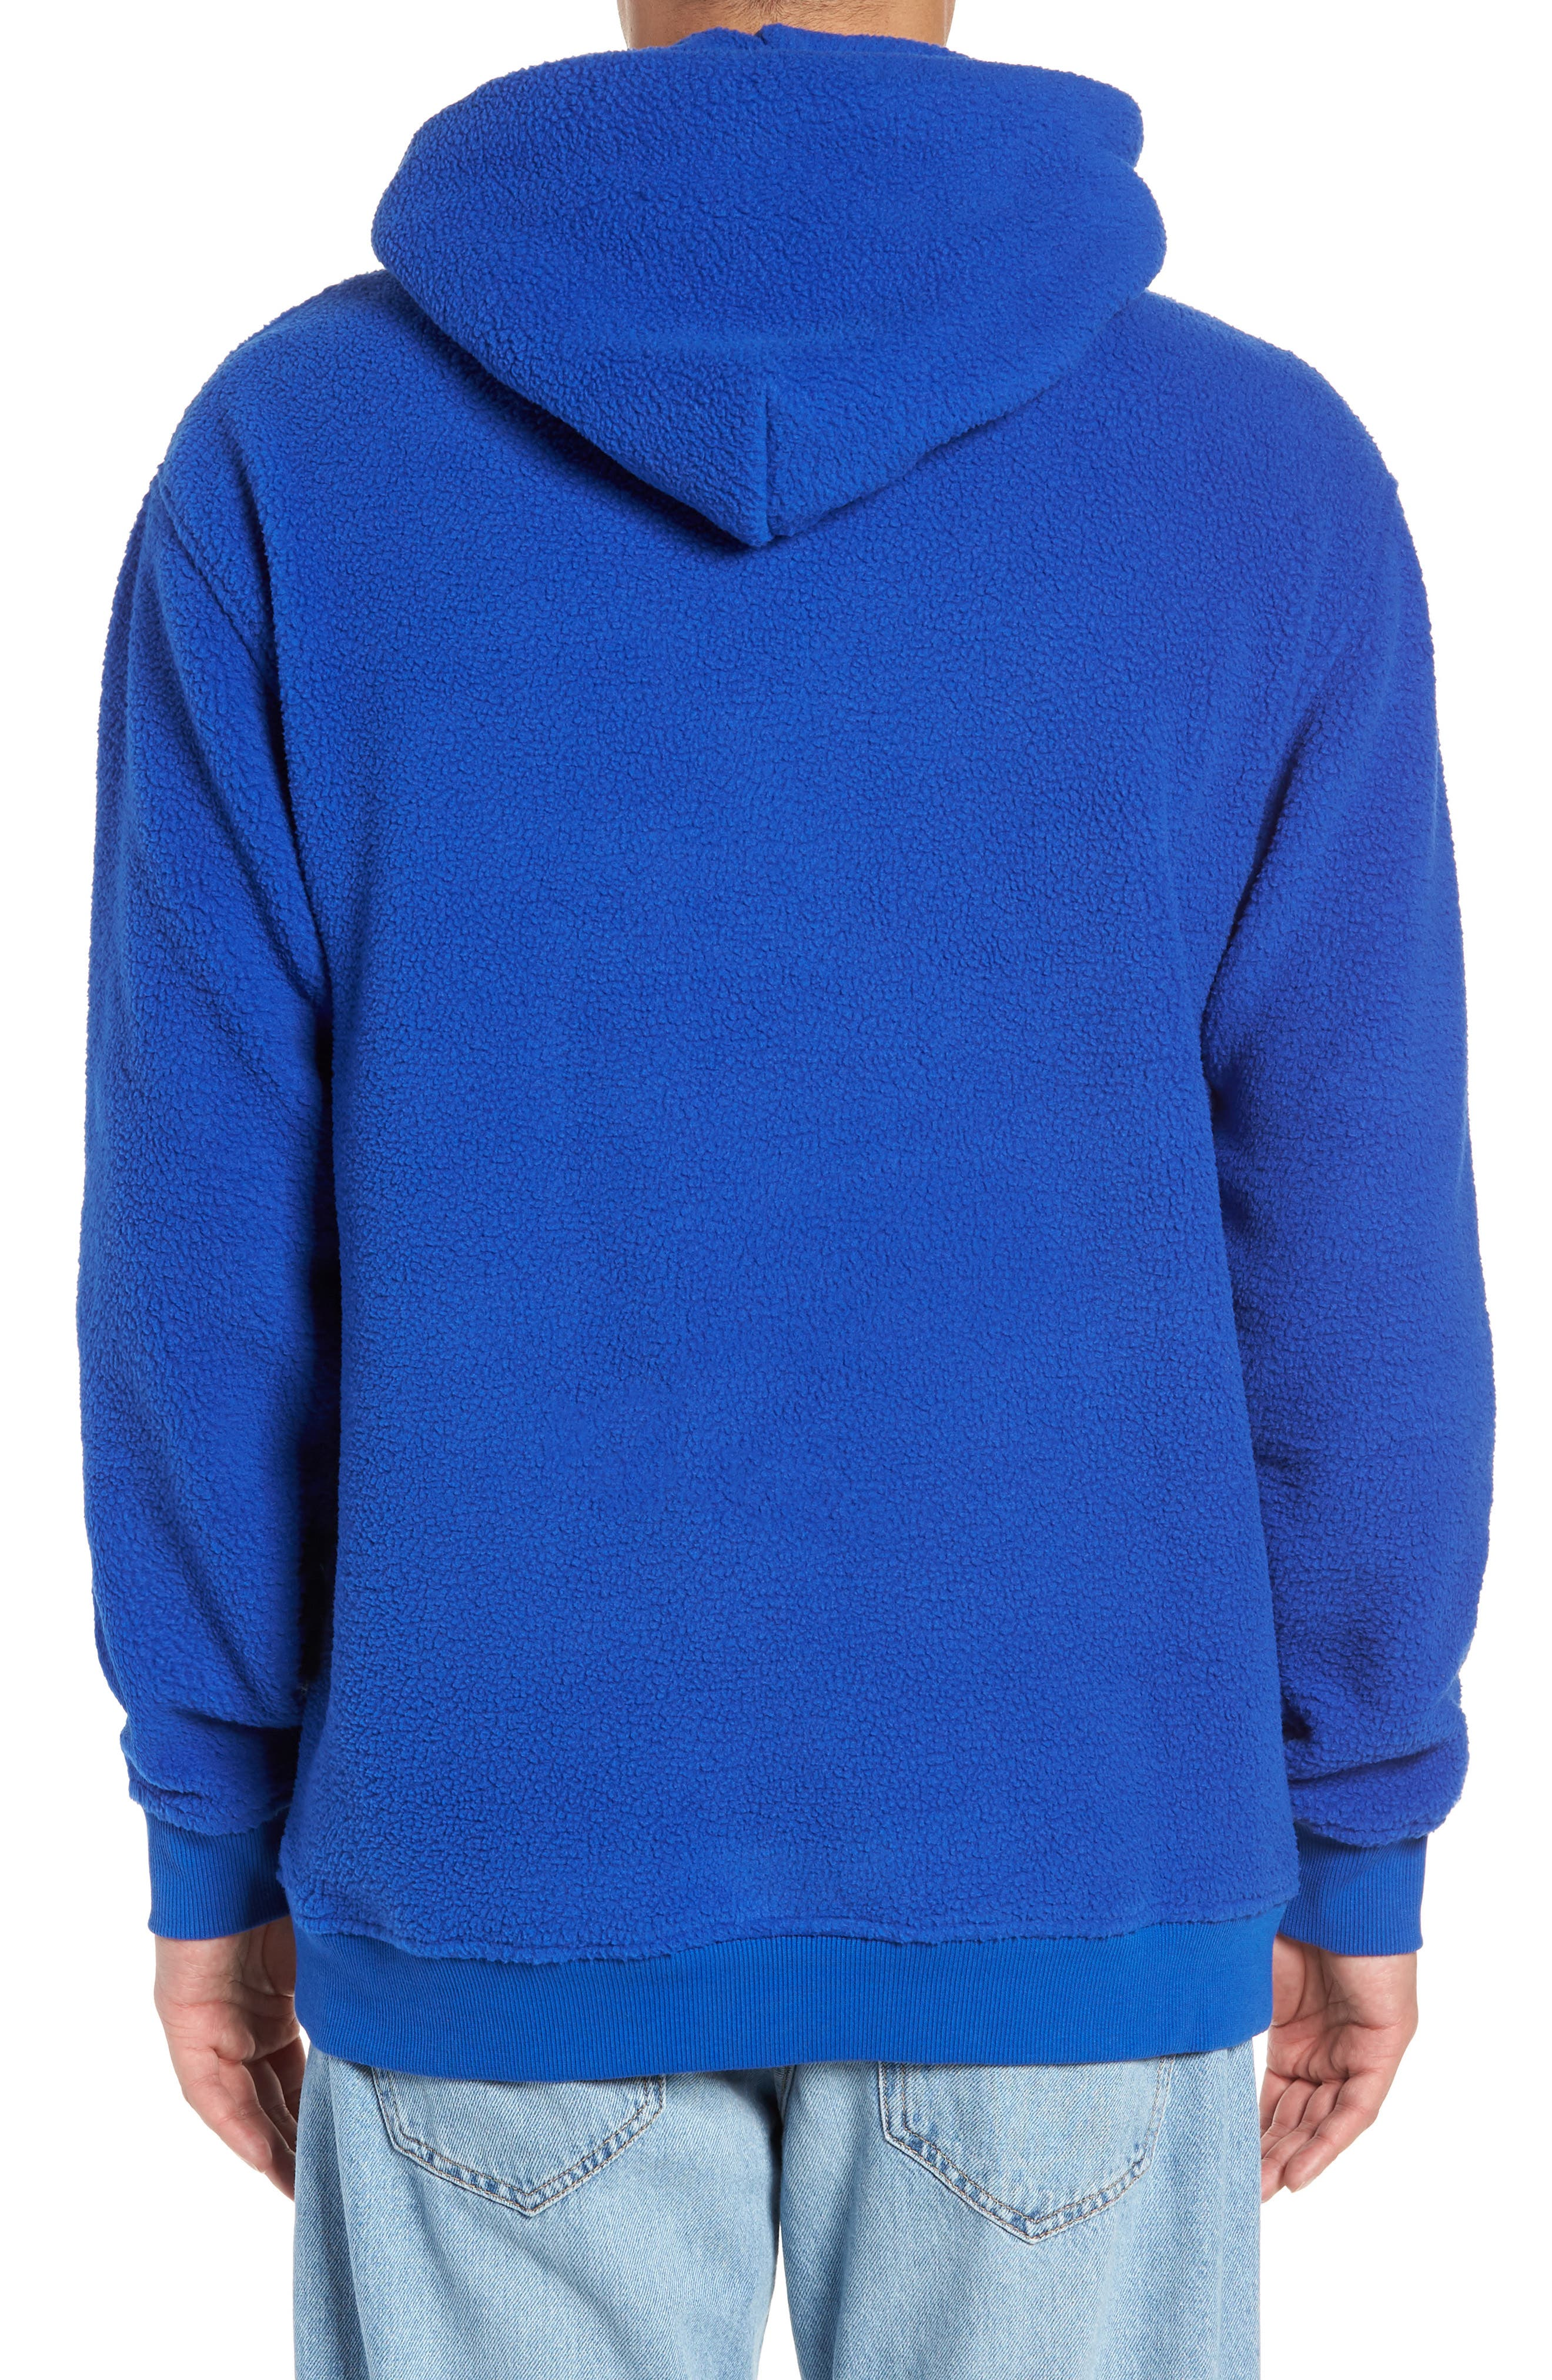 TJM Tommy Classics Polar Hoodie,                             Alternate thumbnail 2, color,                             SURF THE WEB